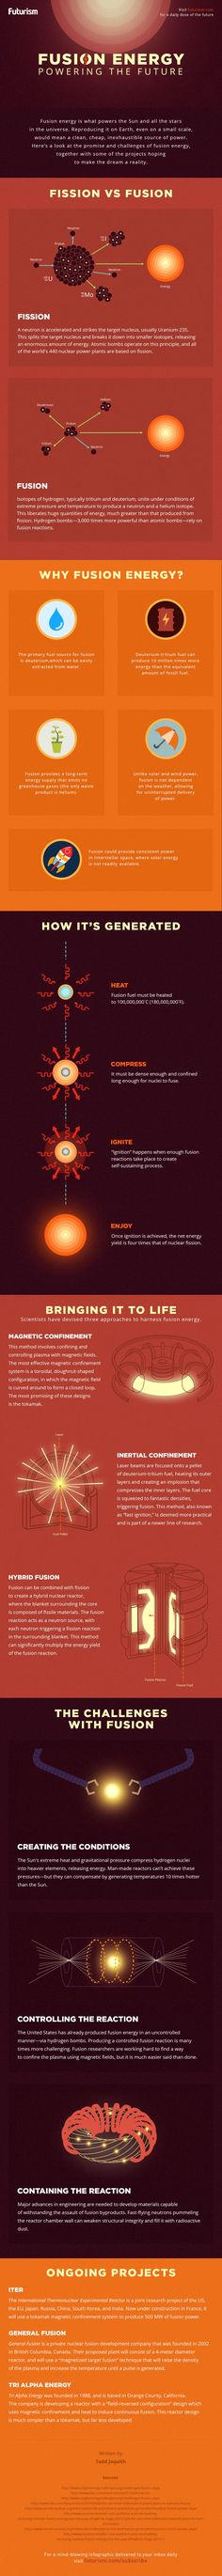 Fusion Energy: A Practical Guide [Infographic]